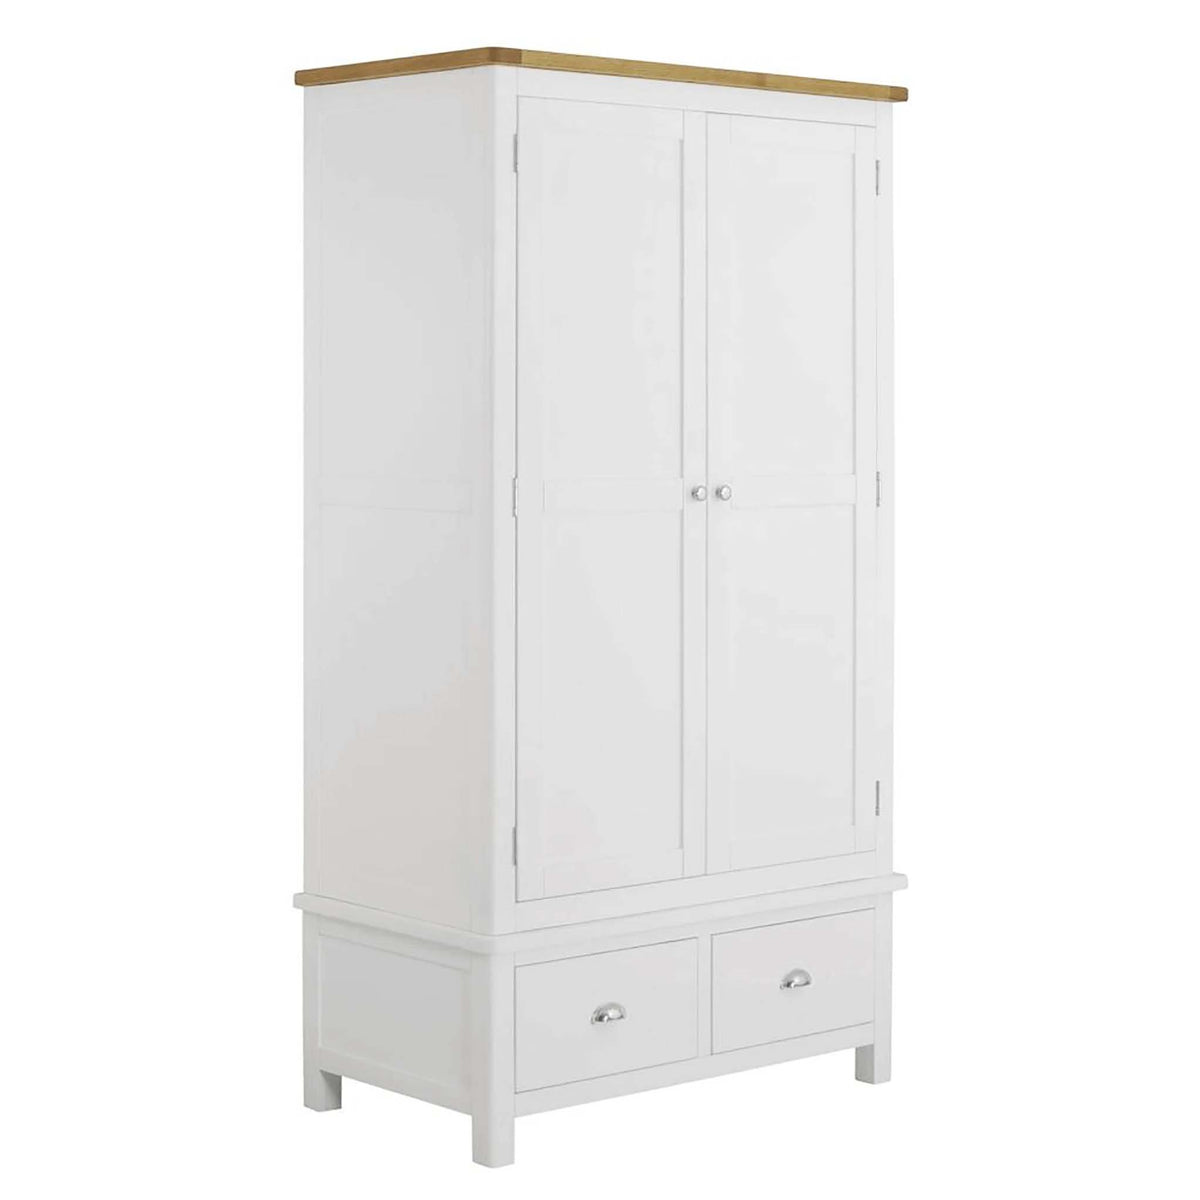 The Padstow White Large 2 Door Wardrobe with Oak Top from Roseland Furniture